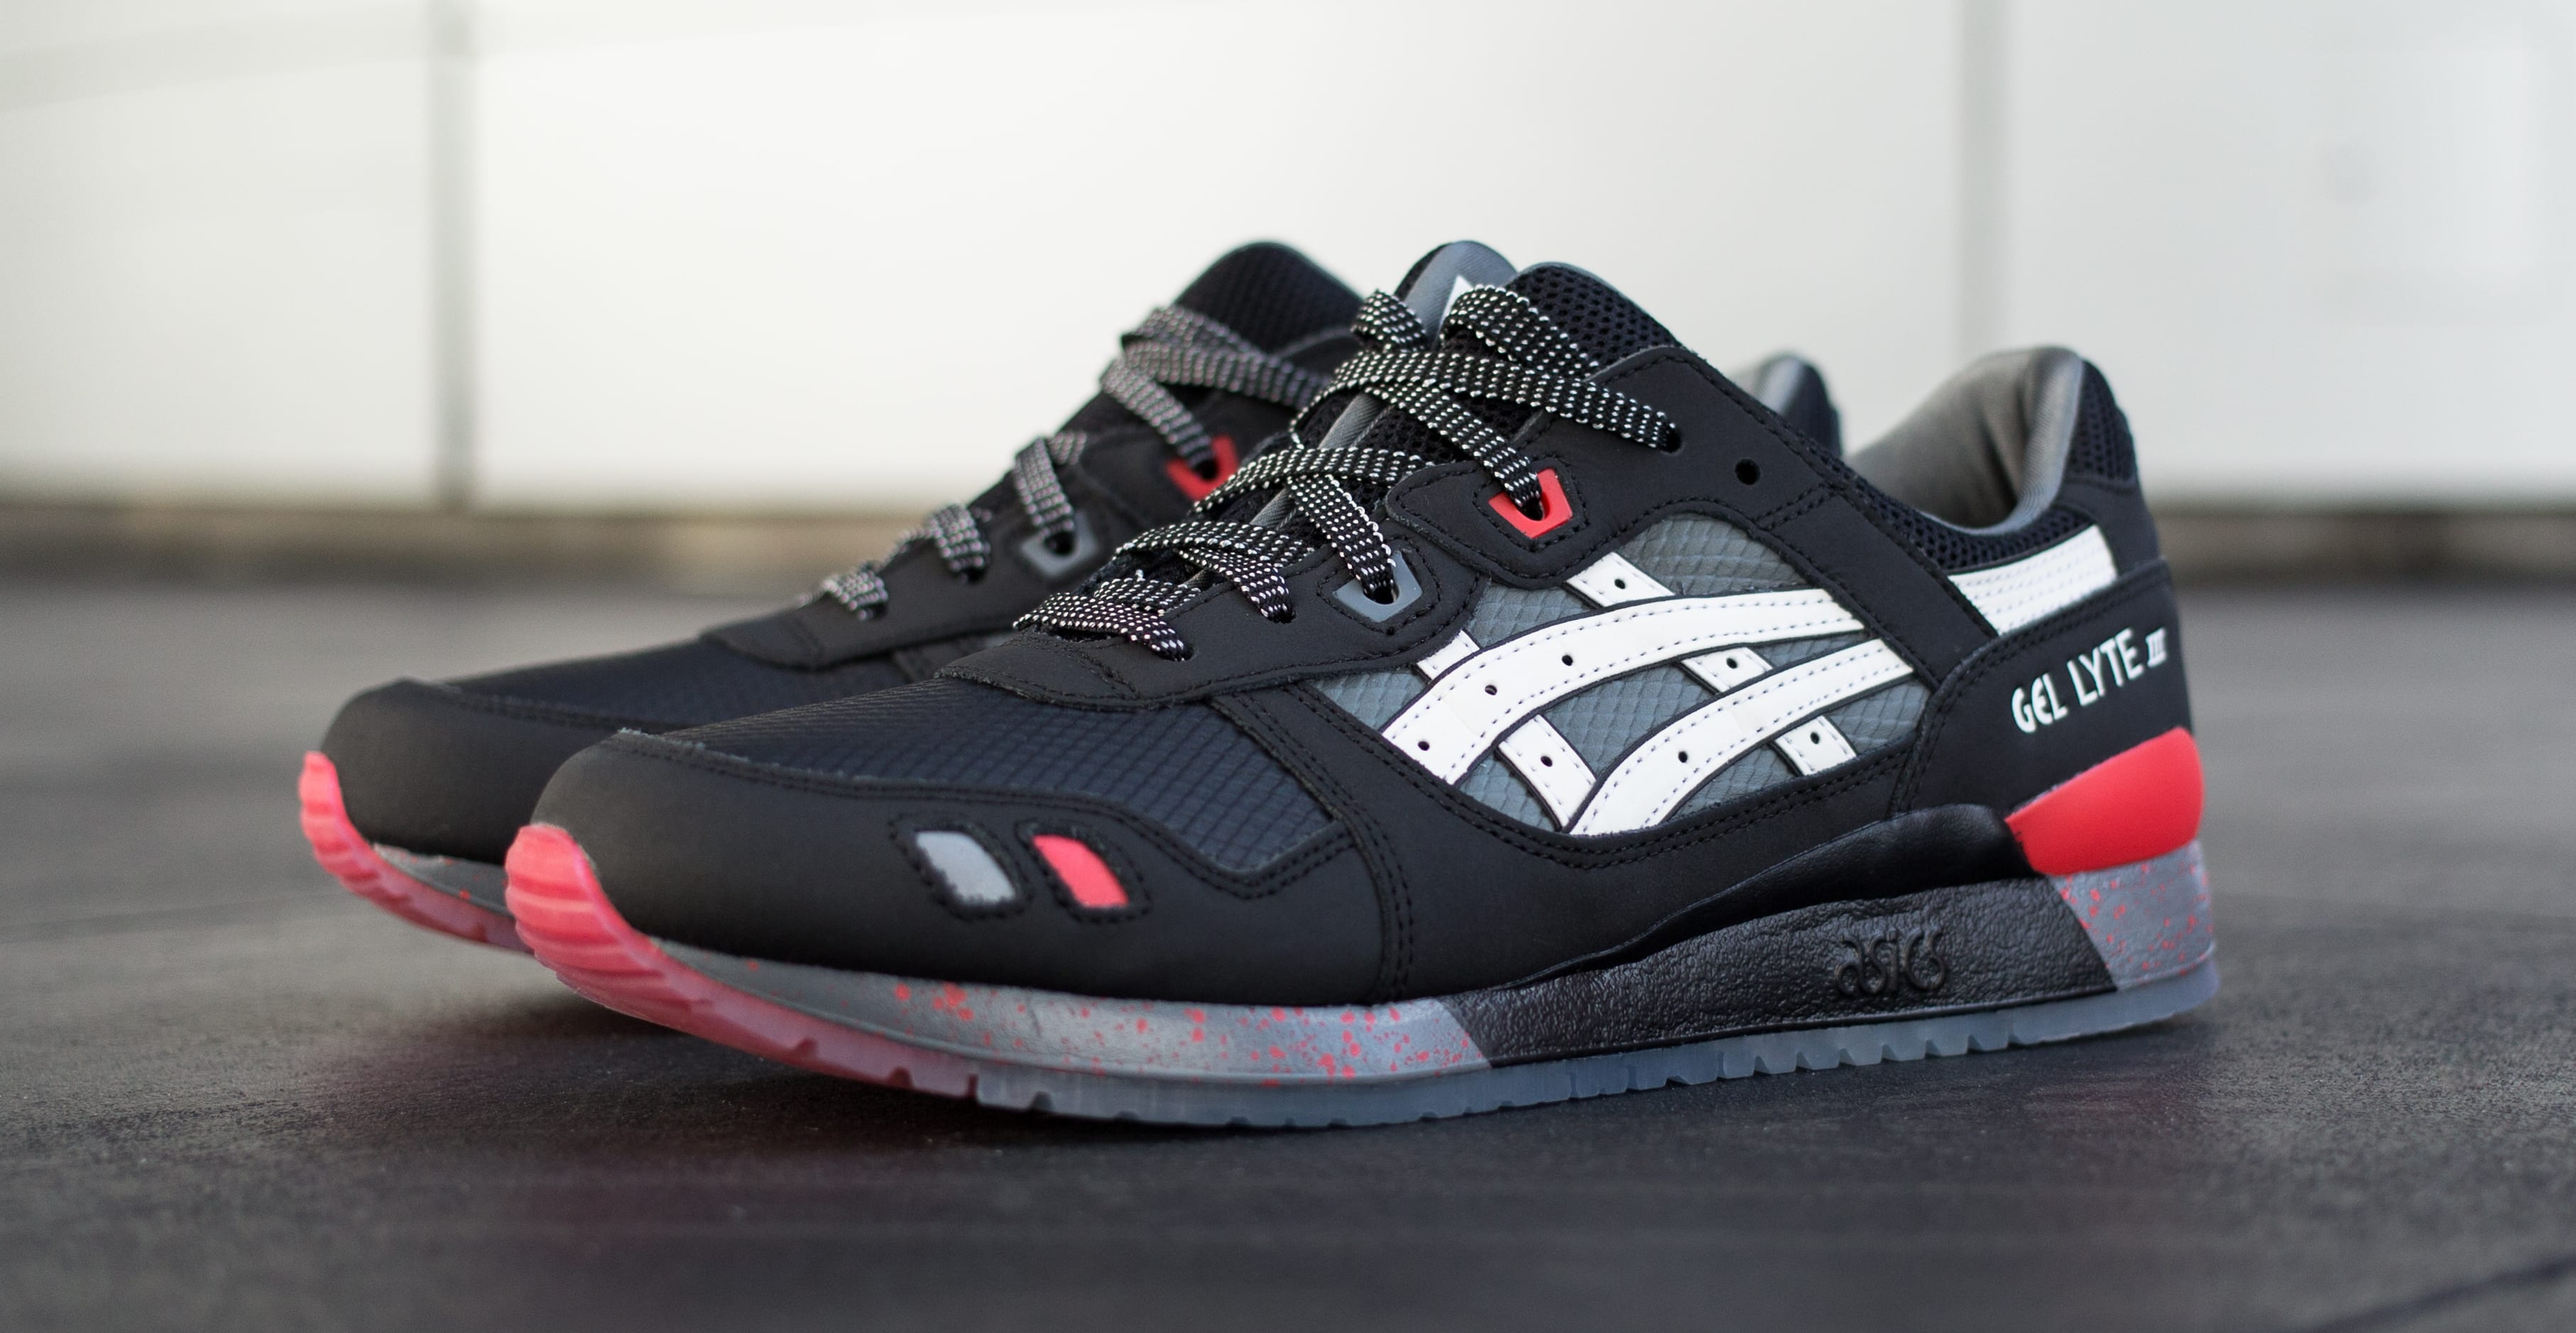 G.I. Joe x Asics Gel Lyte III 'Storm Shadow' 'Snake Eyes